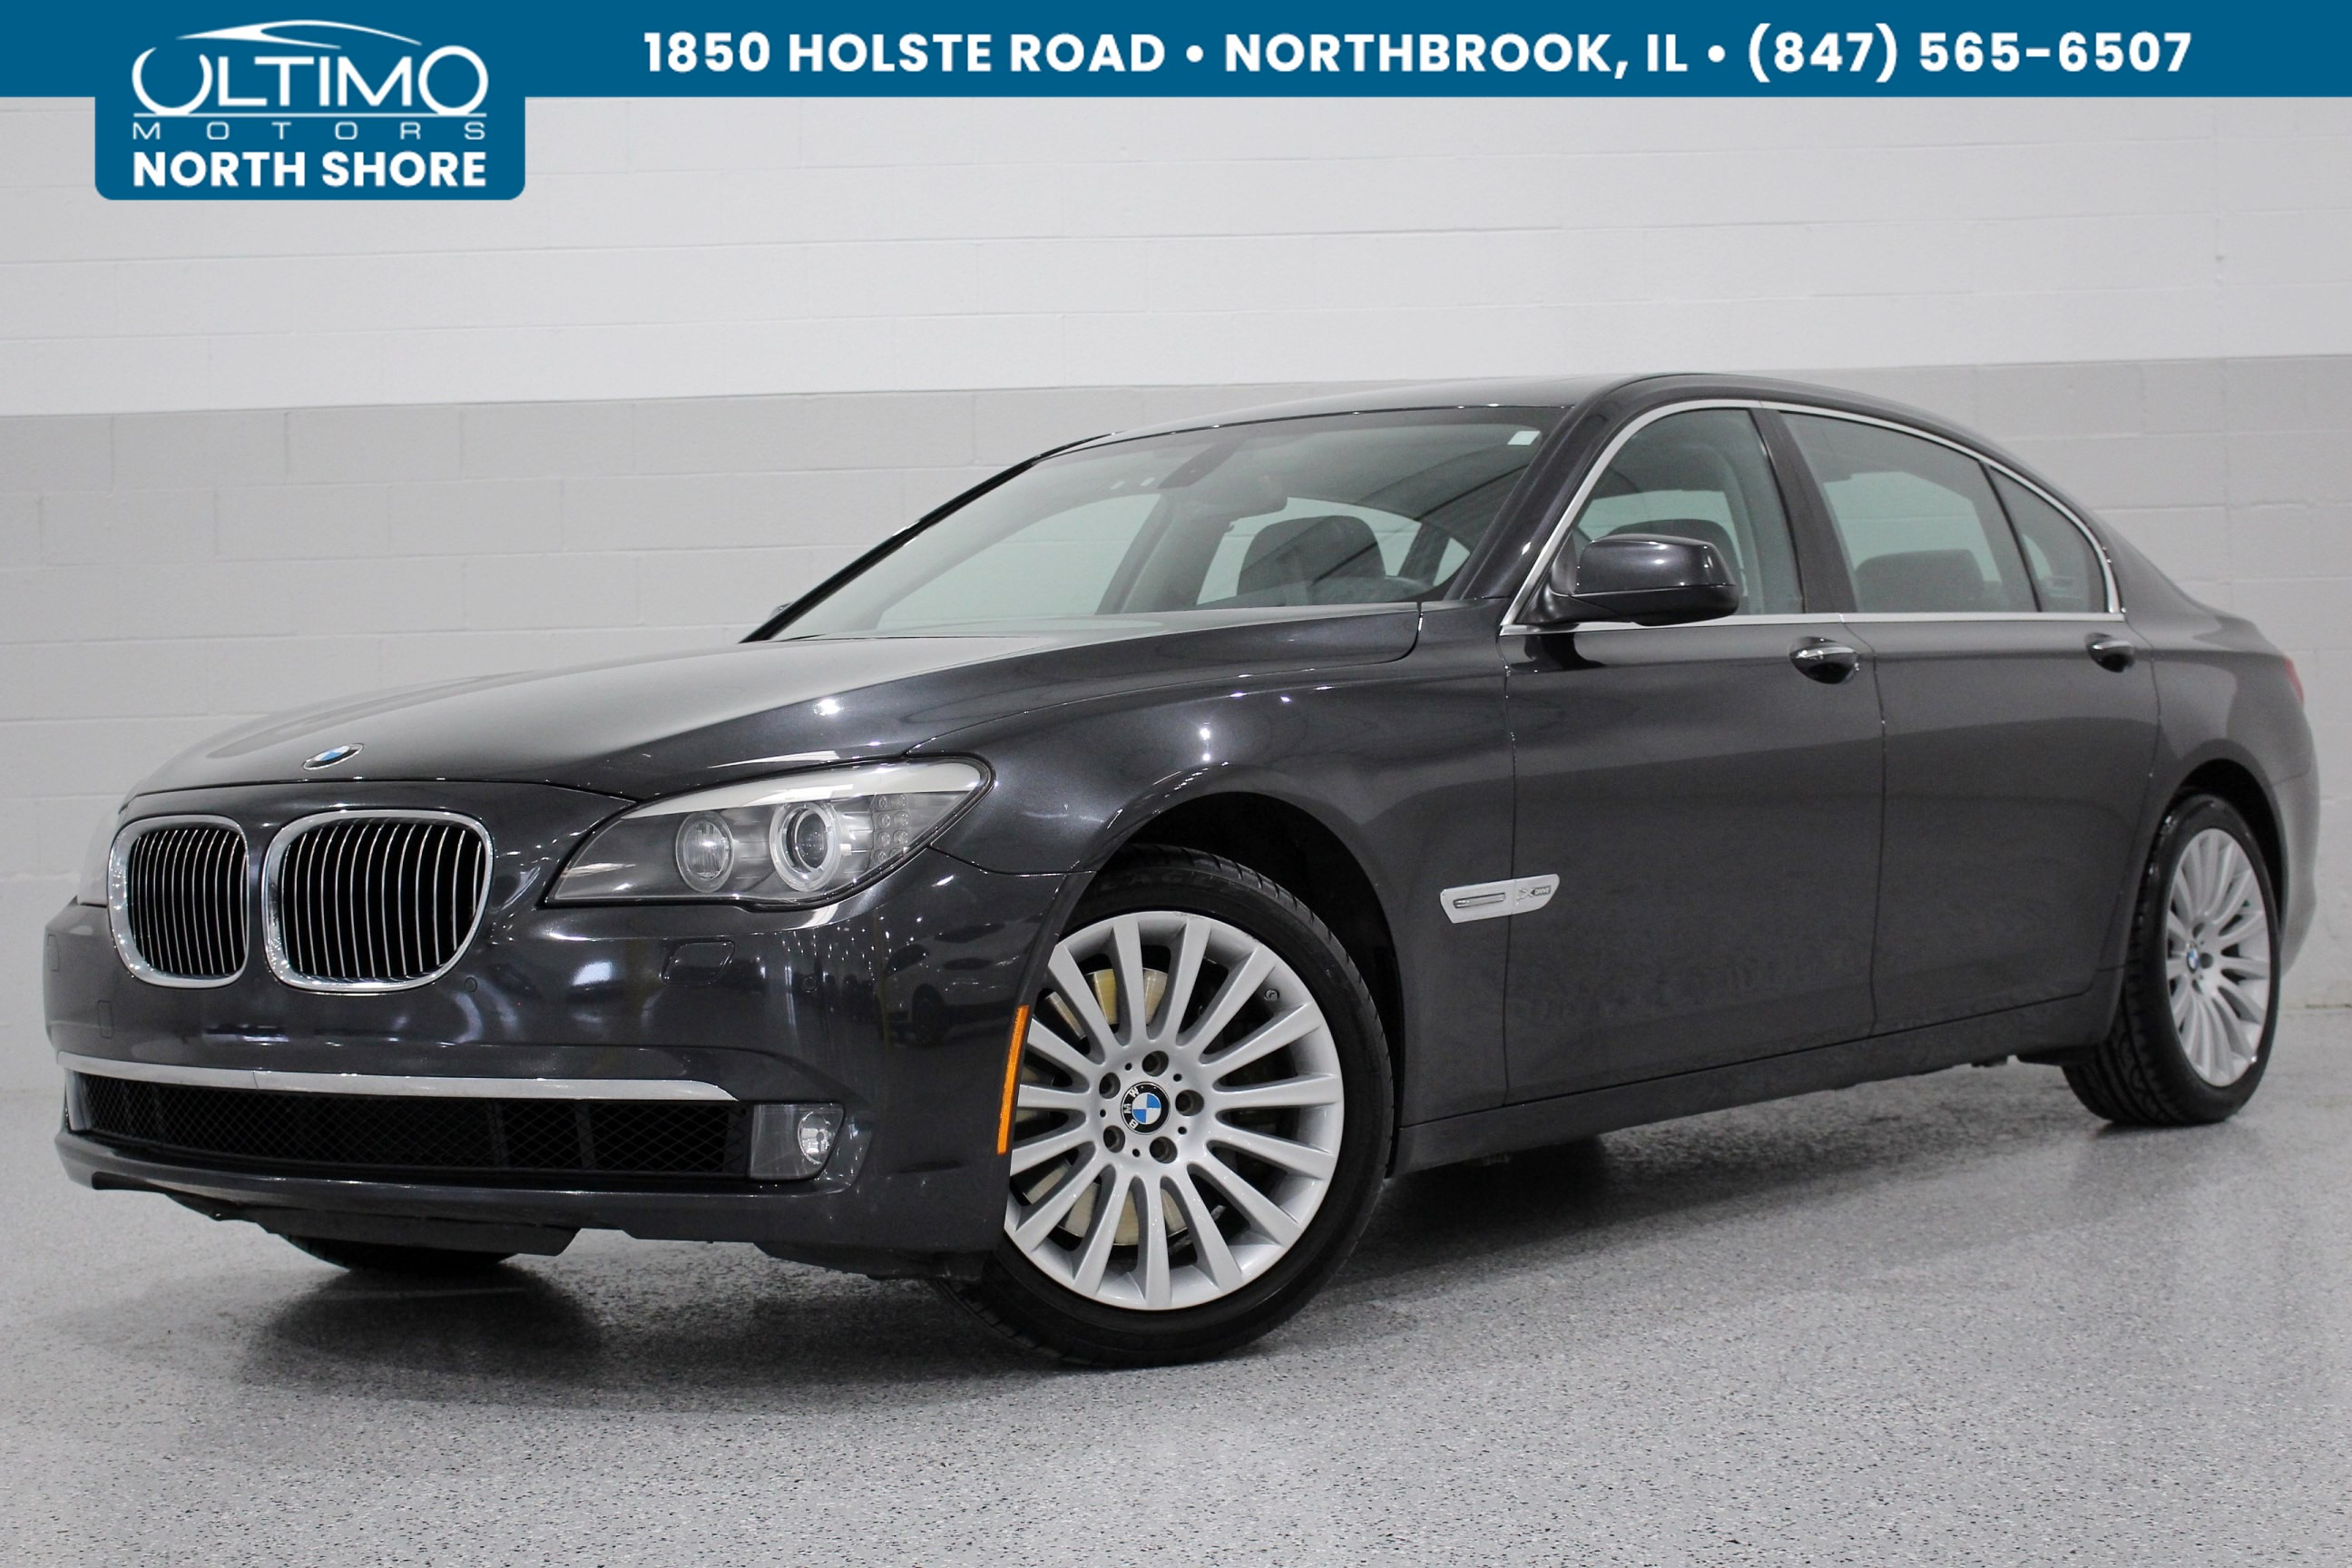 Pre-Owned 2011 BMW 7 Series 750Li xDrive